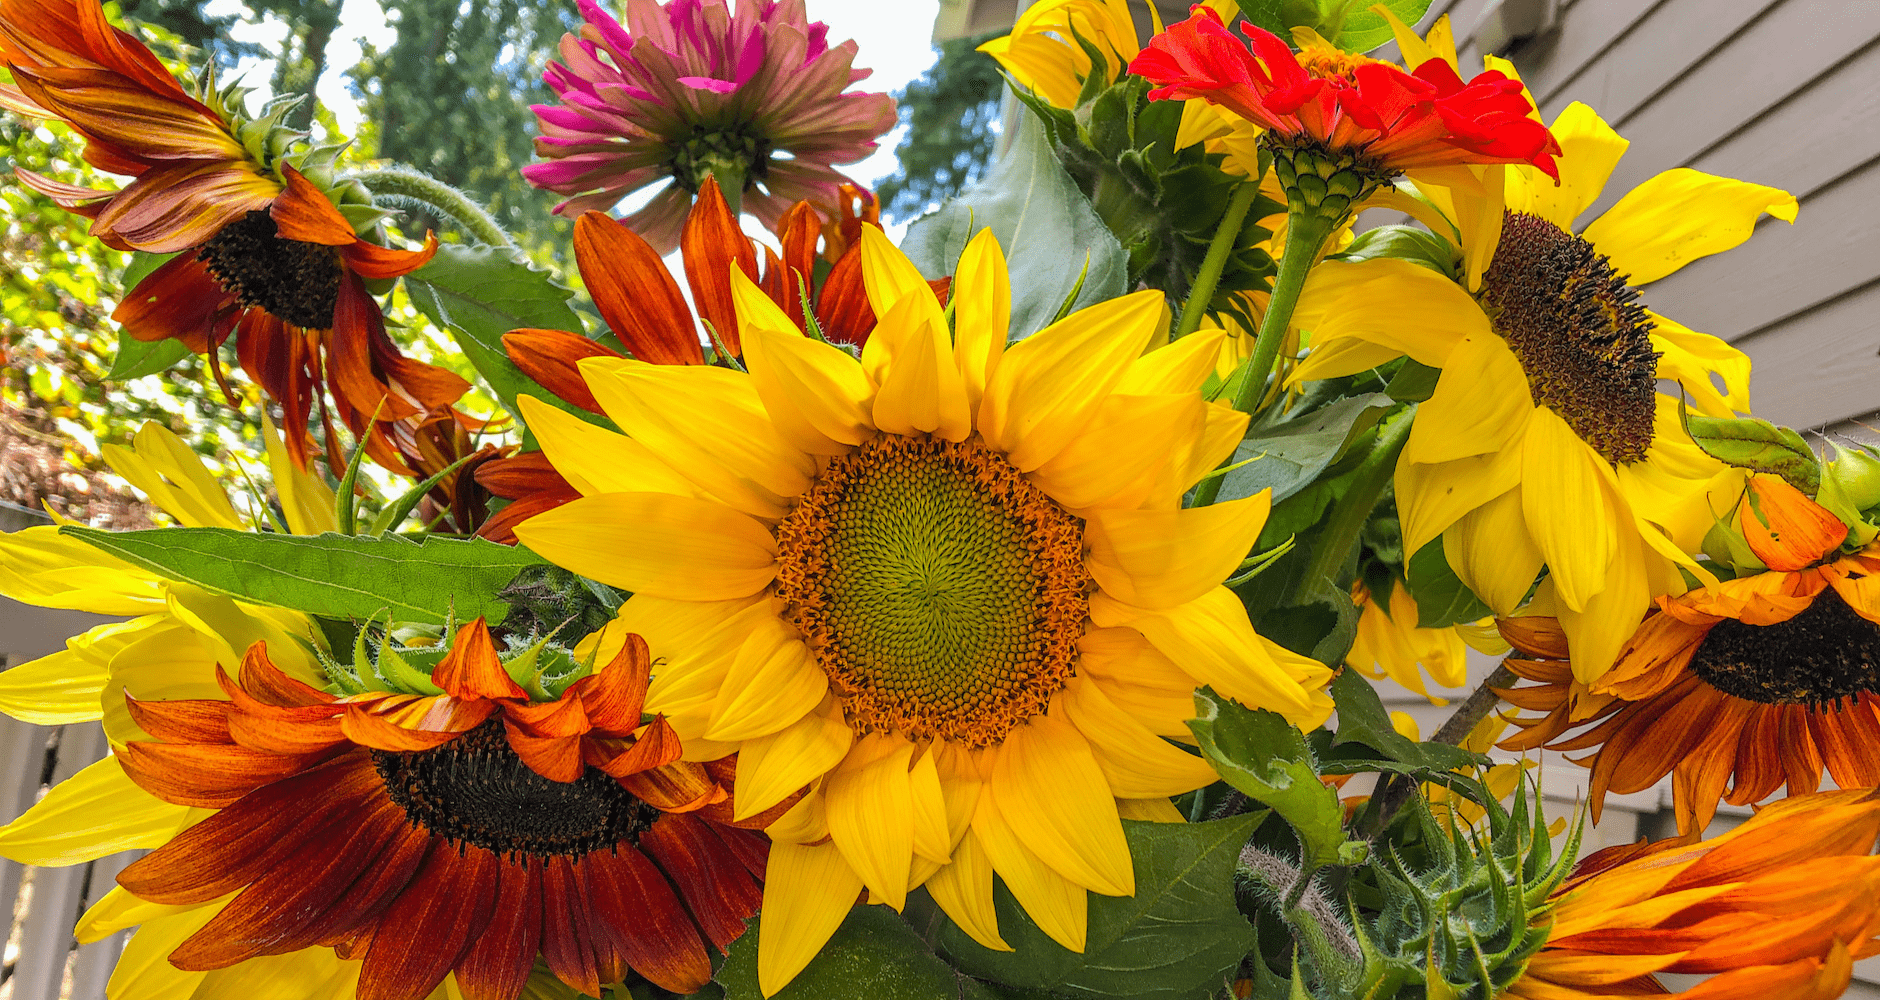 13 Reasons To Love Sunflowers Even Moreimage preview